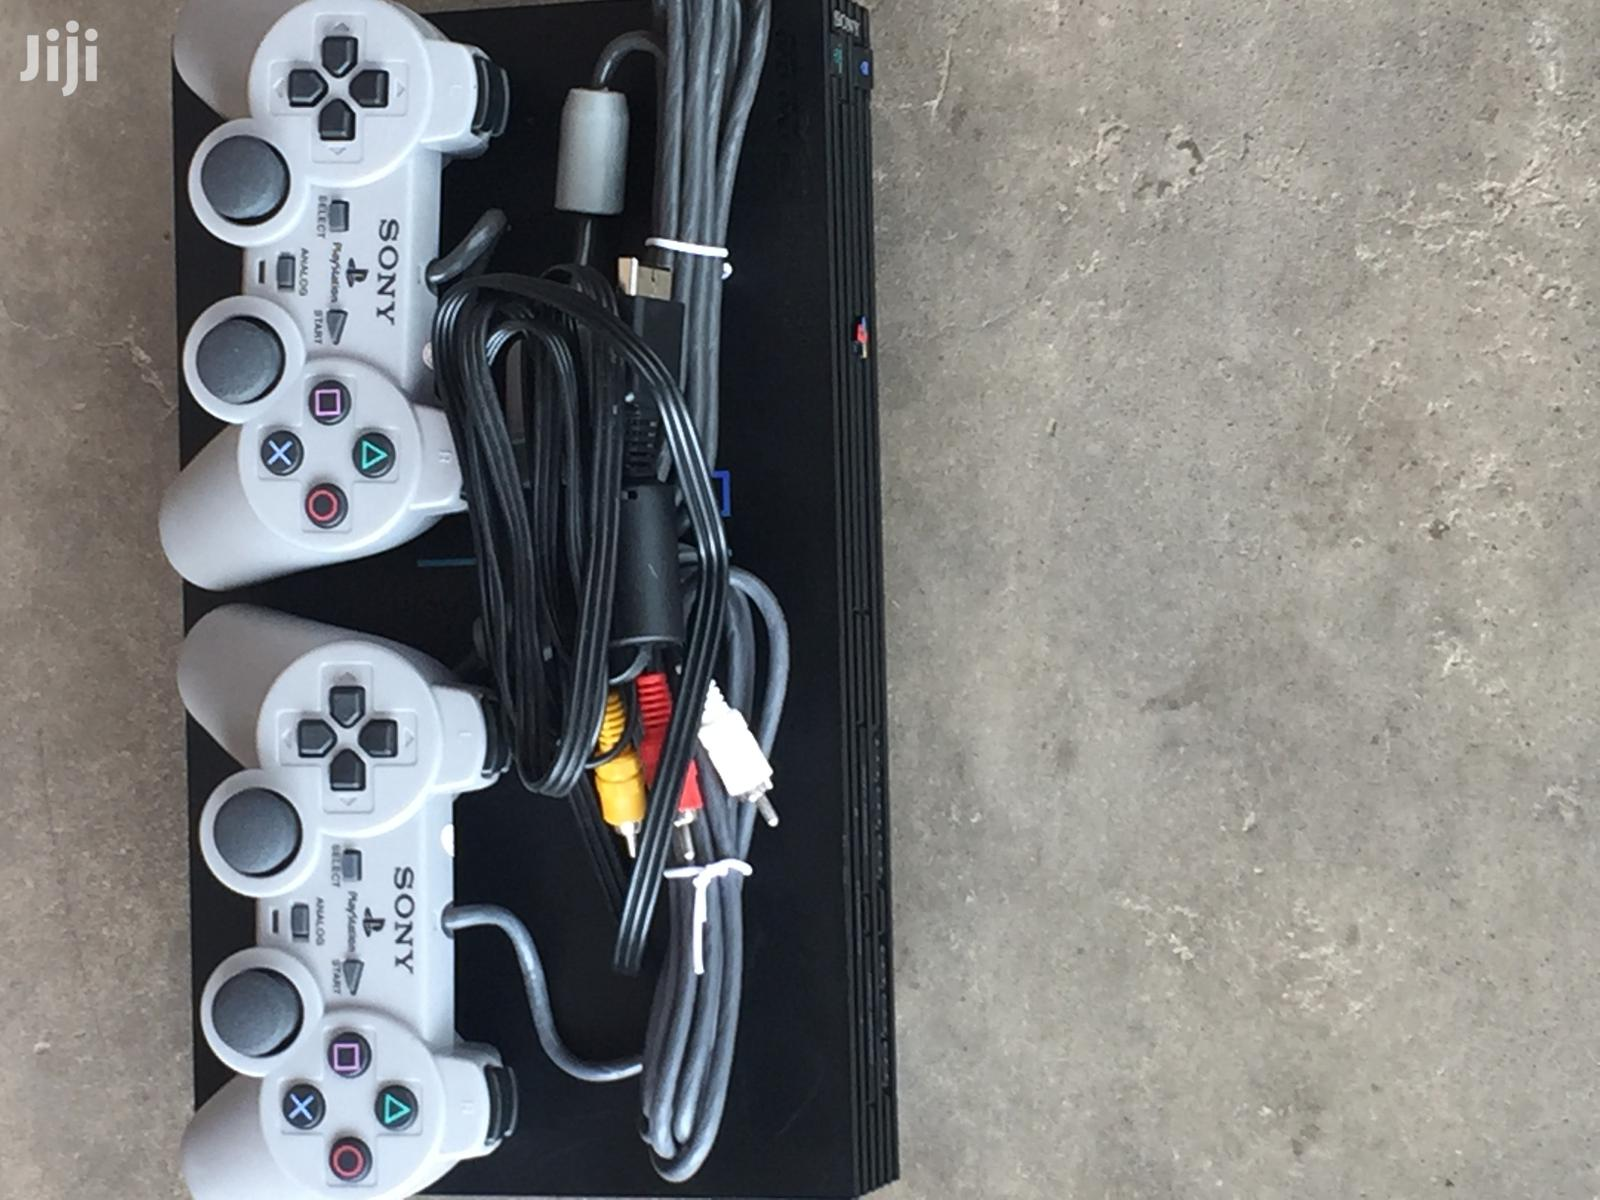 Fresh Ps2 Loaded With Games | Video Game Consoles for sale in Accra new Town, Greater Accra, Ghana